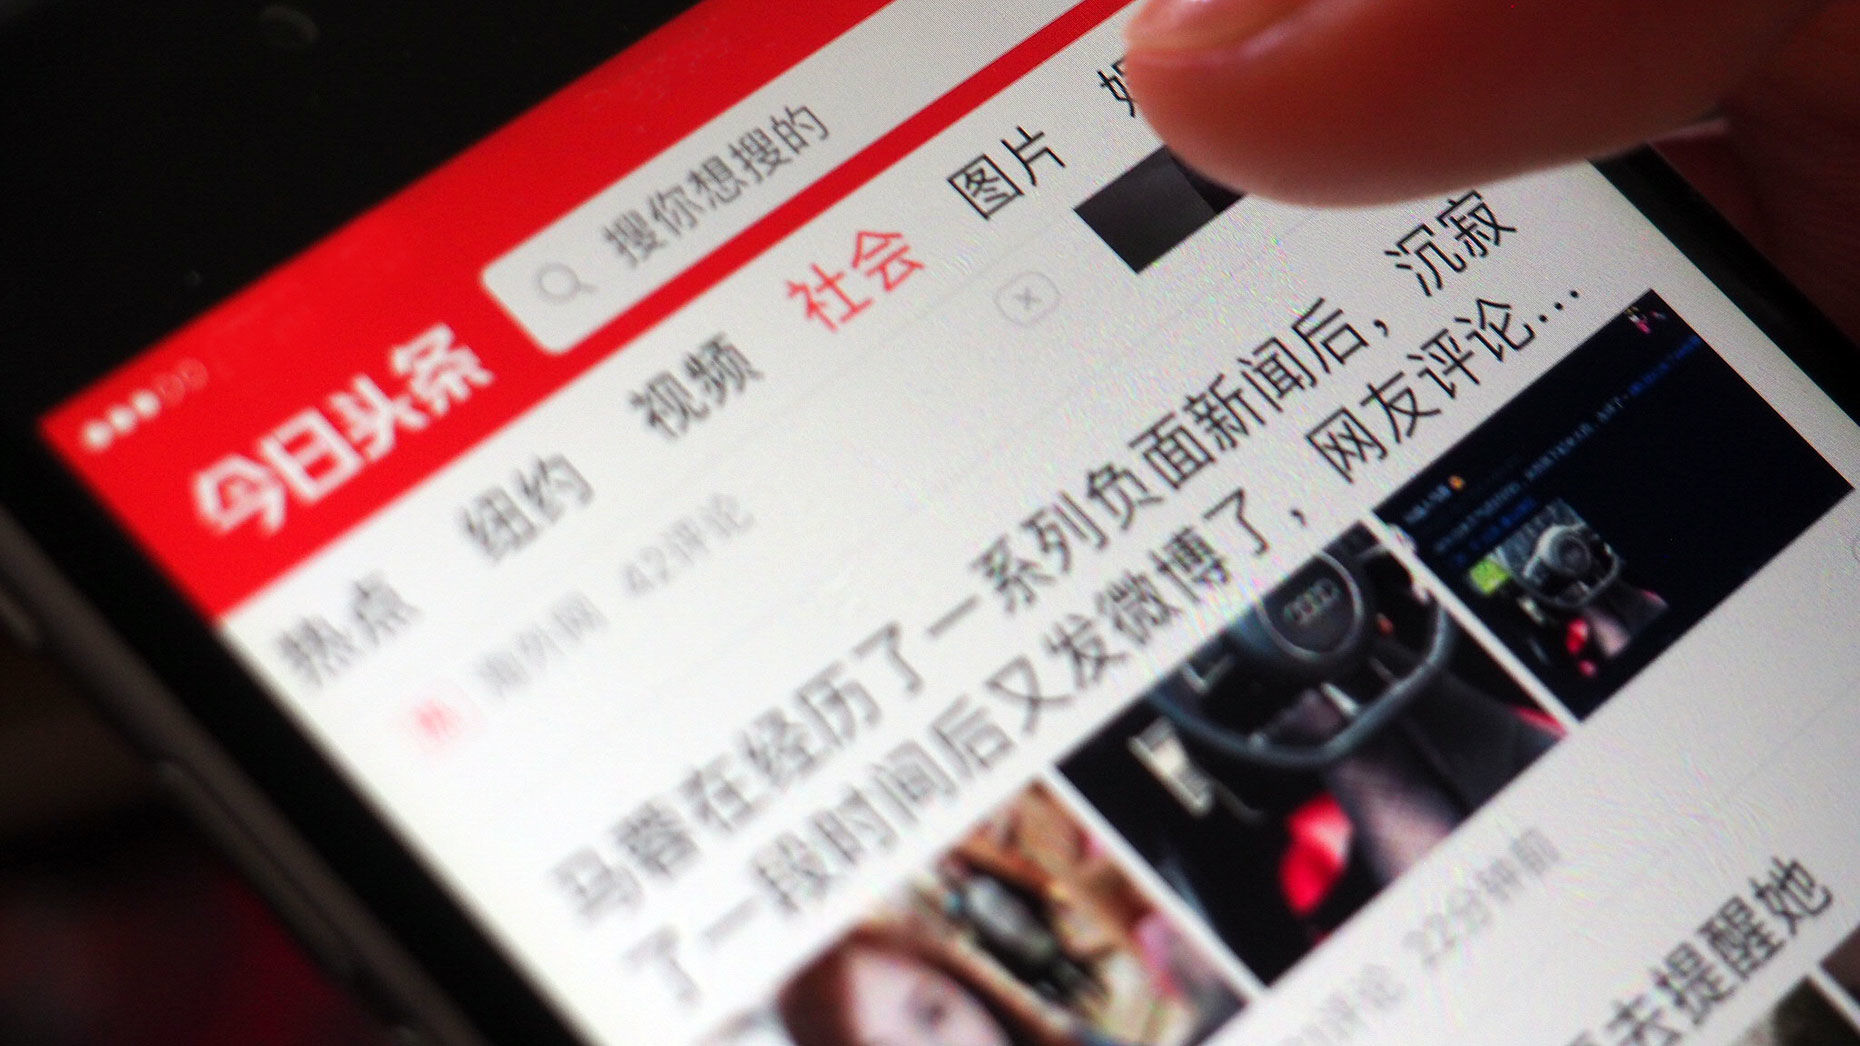 Toutiao's app on a smartphone. Photo by Mike Sullivan.